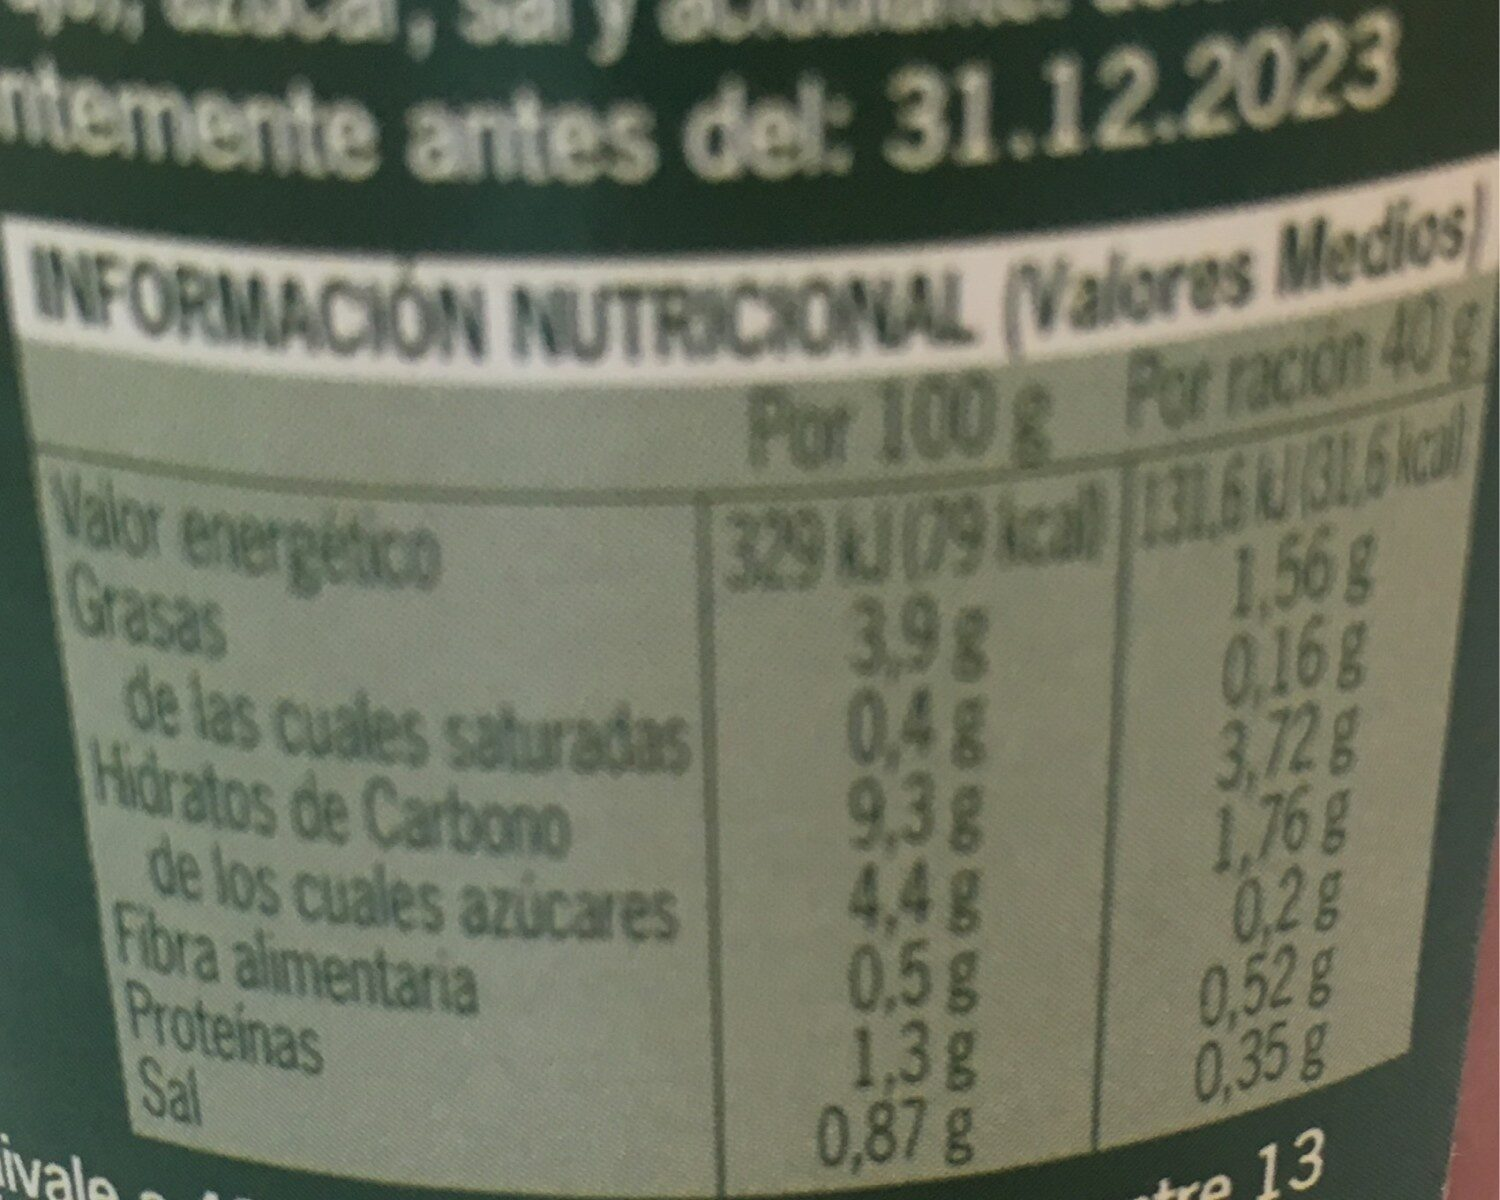 Tomate frito - Informations nutritionnelles